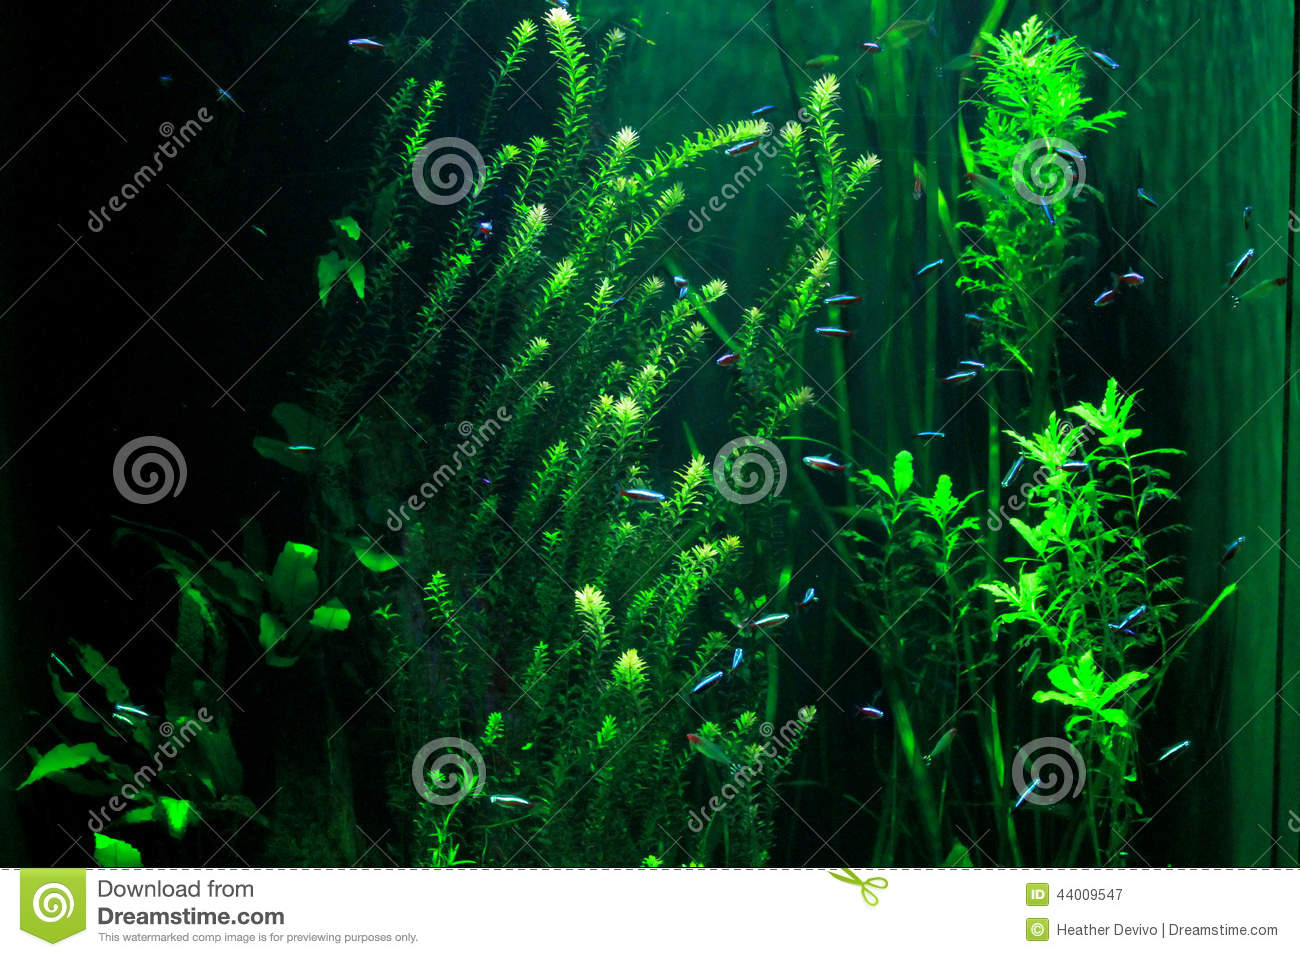 ... colored, tiny aquarium fish in a predominantly green environment